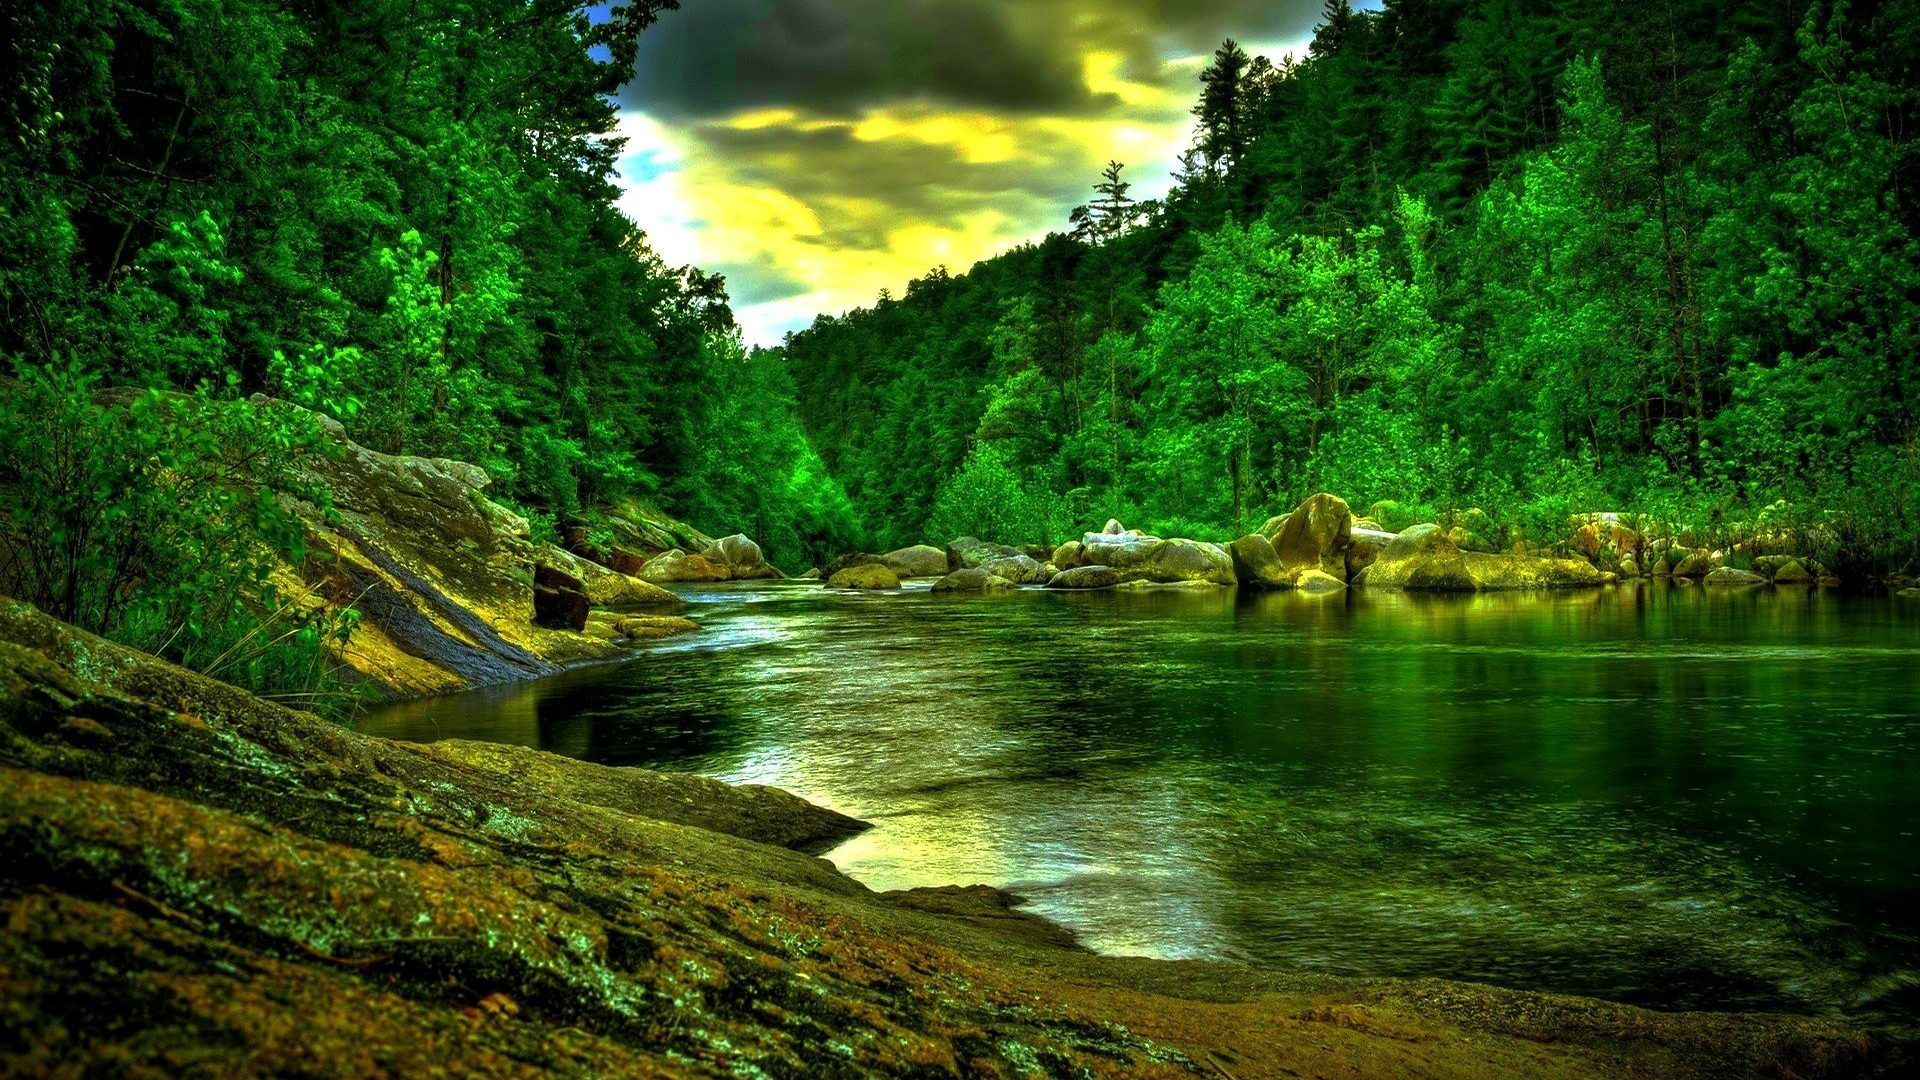 Nature-amazon-pictures-wallpapers-desktop Wallpaper Hd